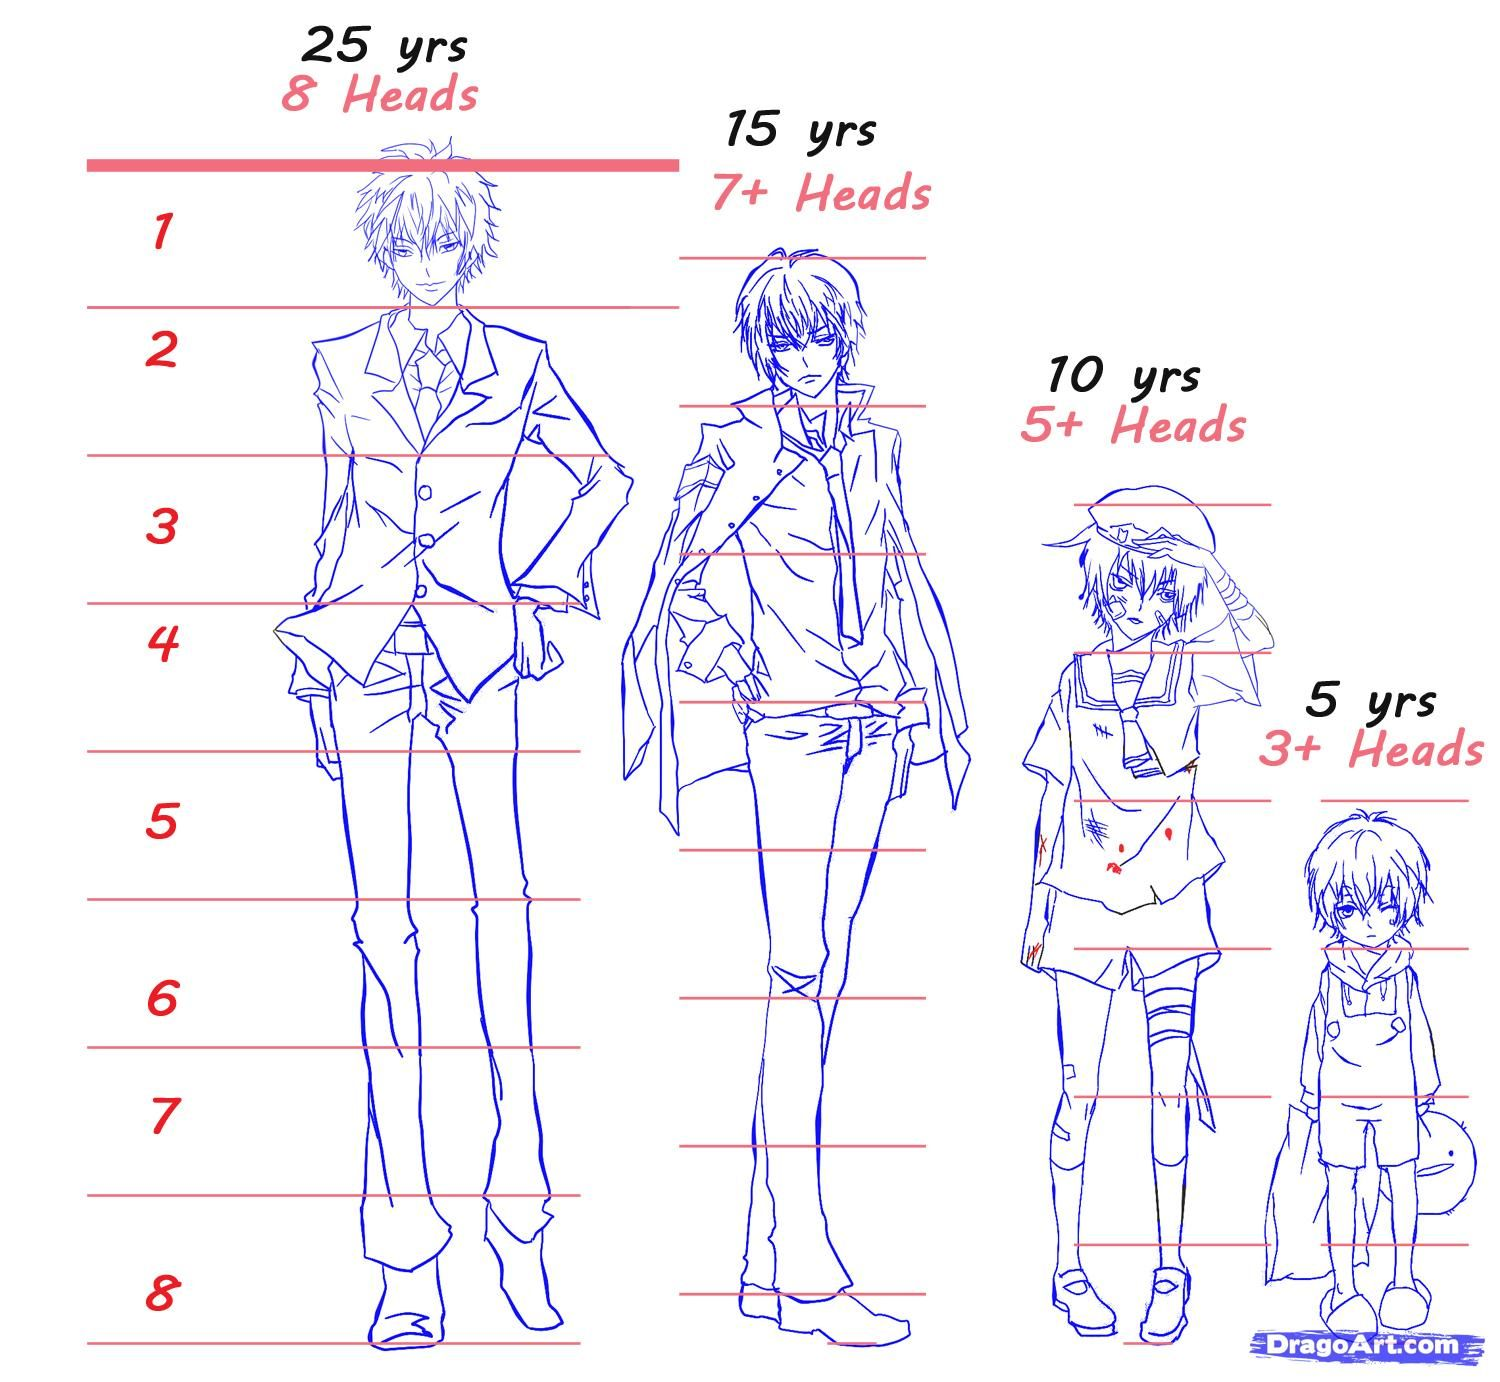 How To Sketch An Anime Boy Step By Step Anime People Anime